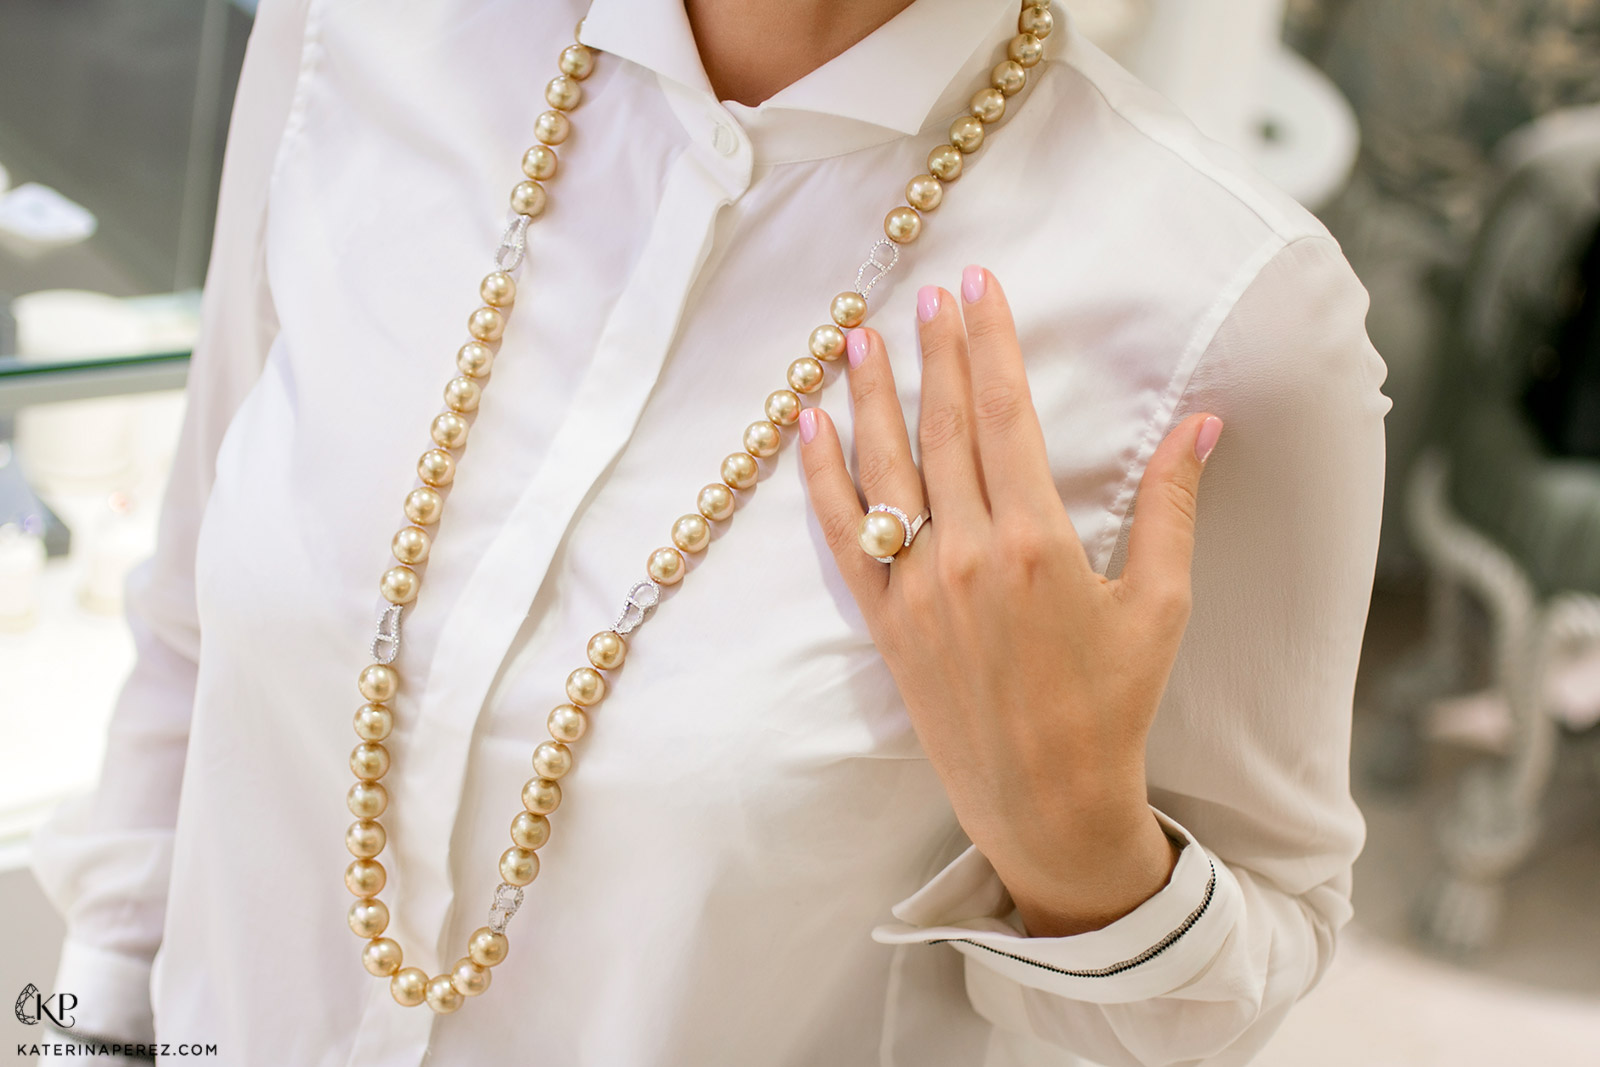 Ksenia Podnebesnaya sautoir necklace and ring with South Sea pearls and diamonds